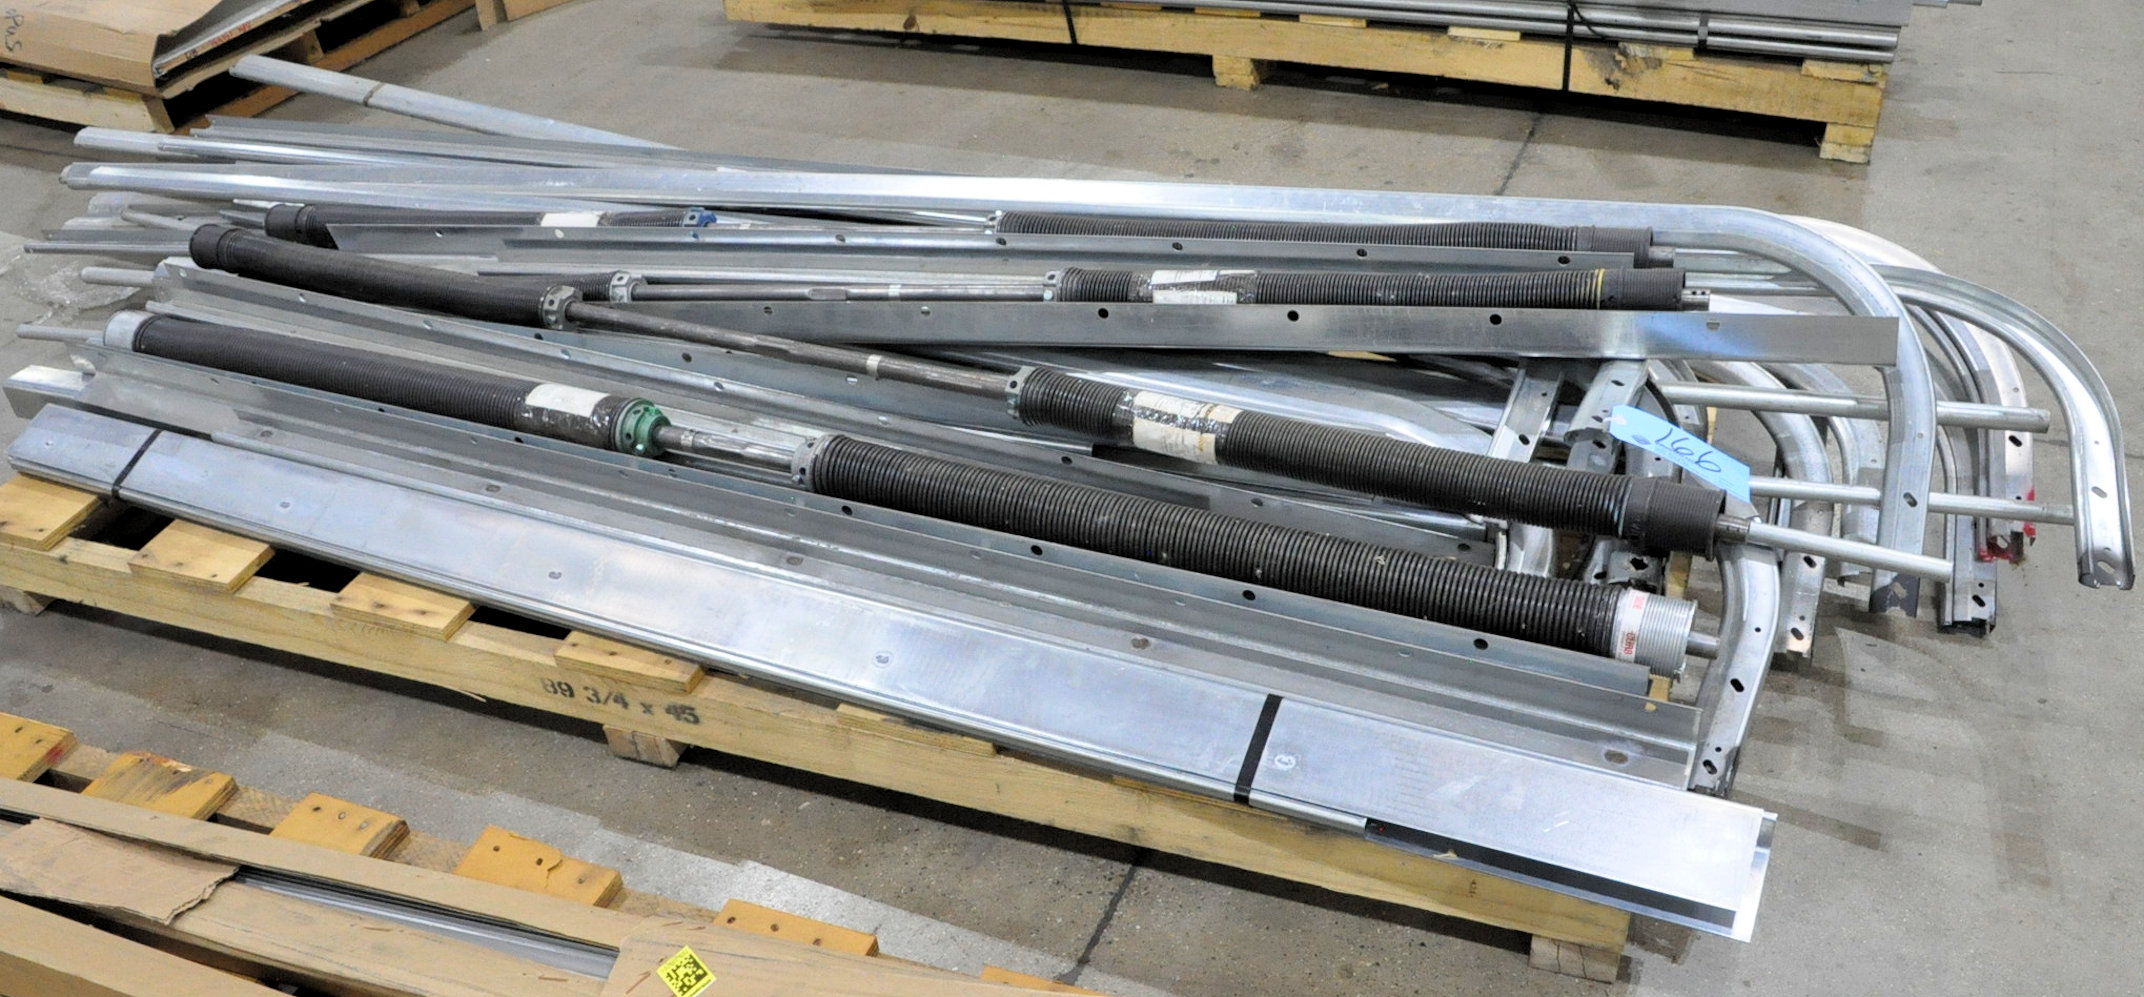 Lot-Overhead Truck Door Springs and Tracks on (1) Pallet